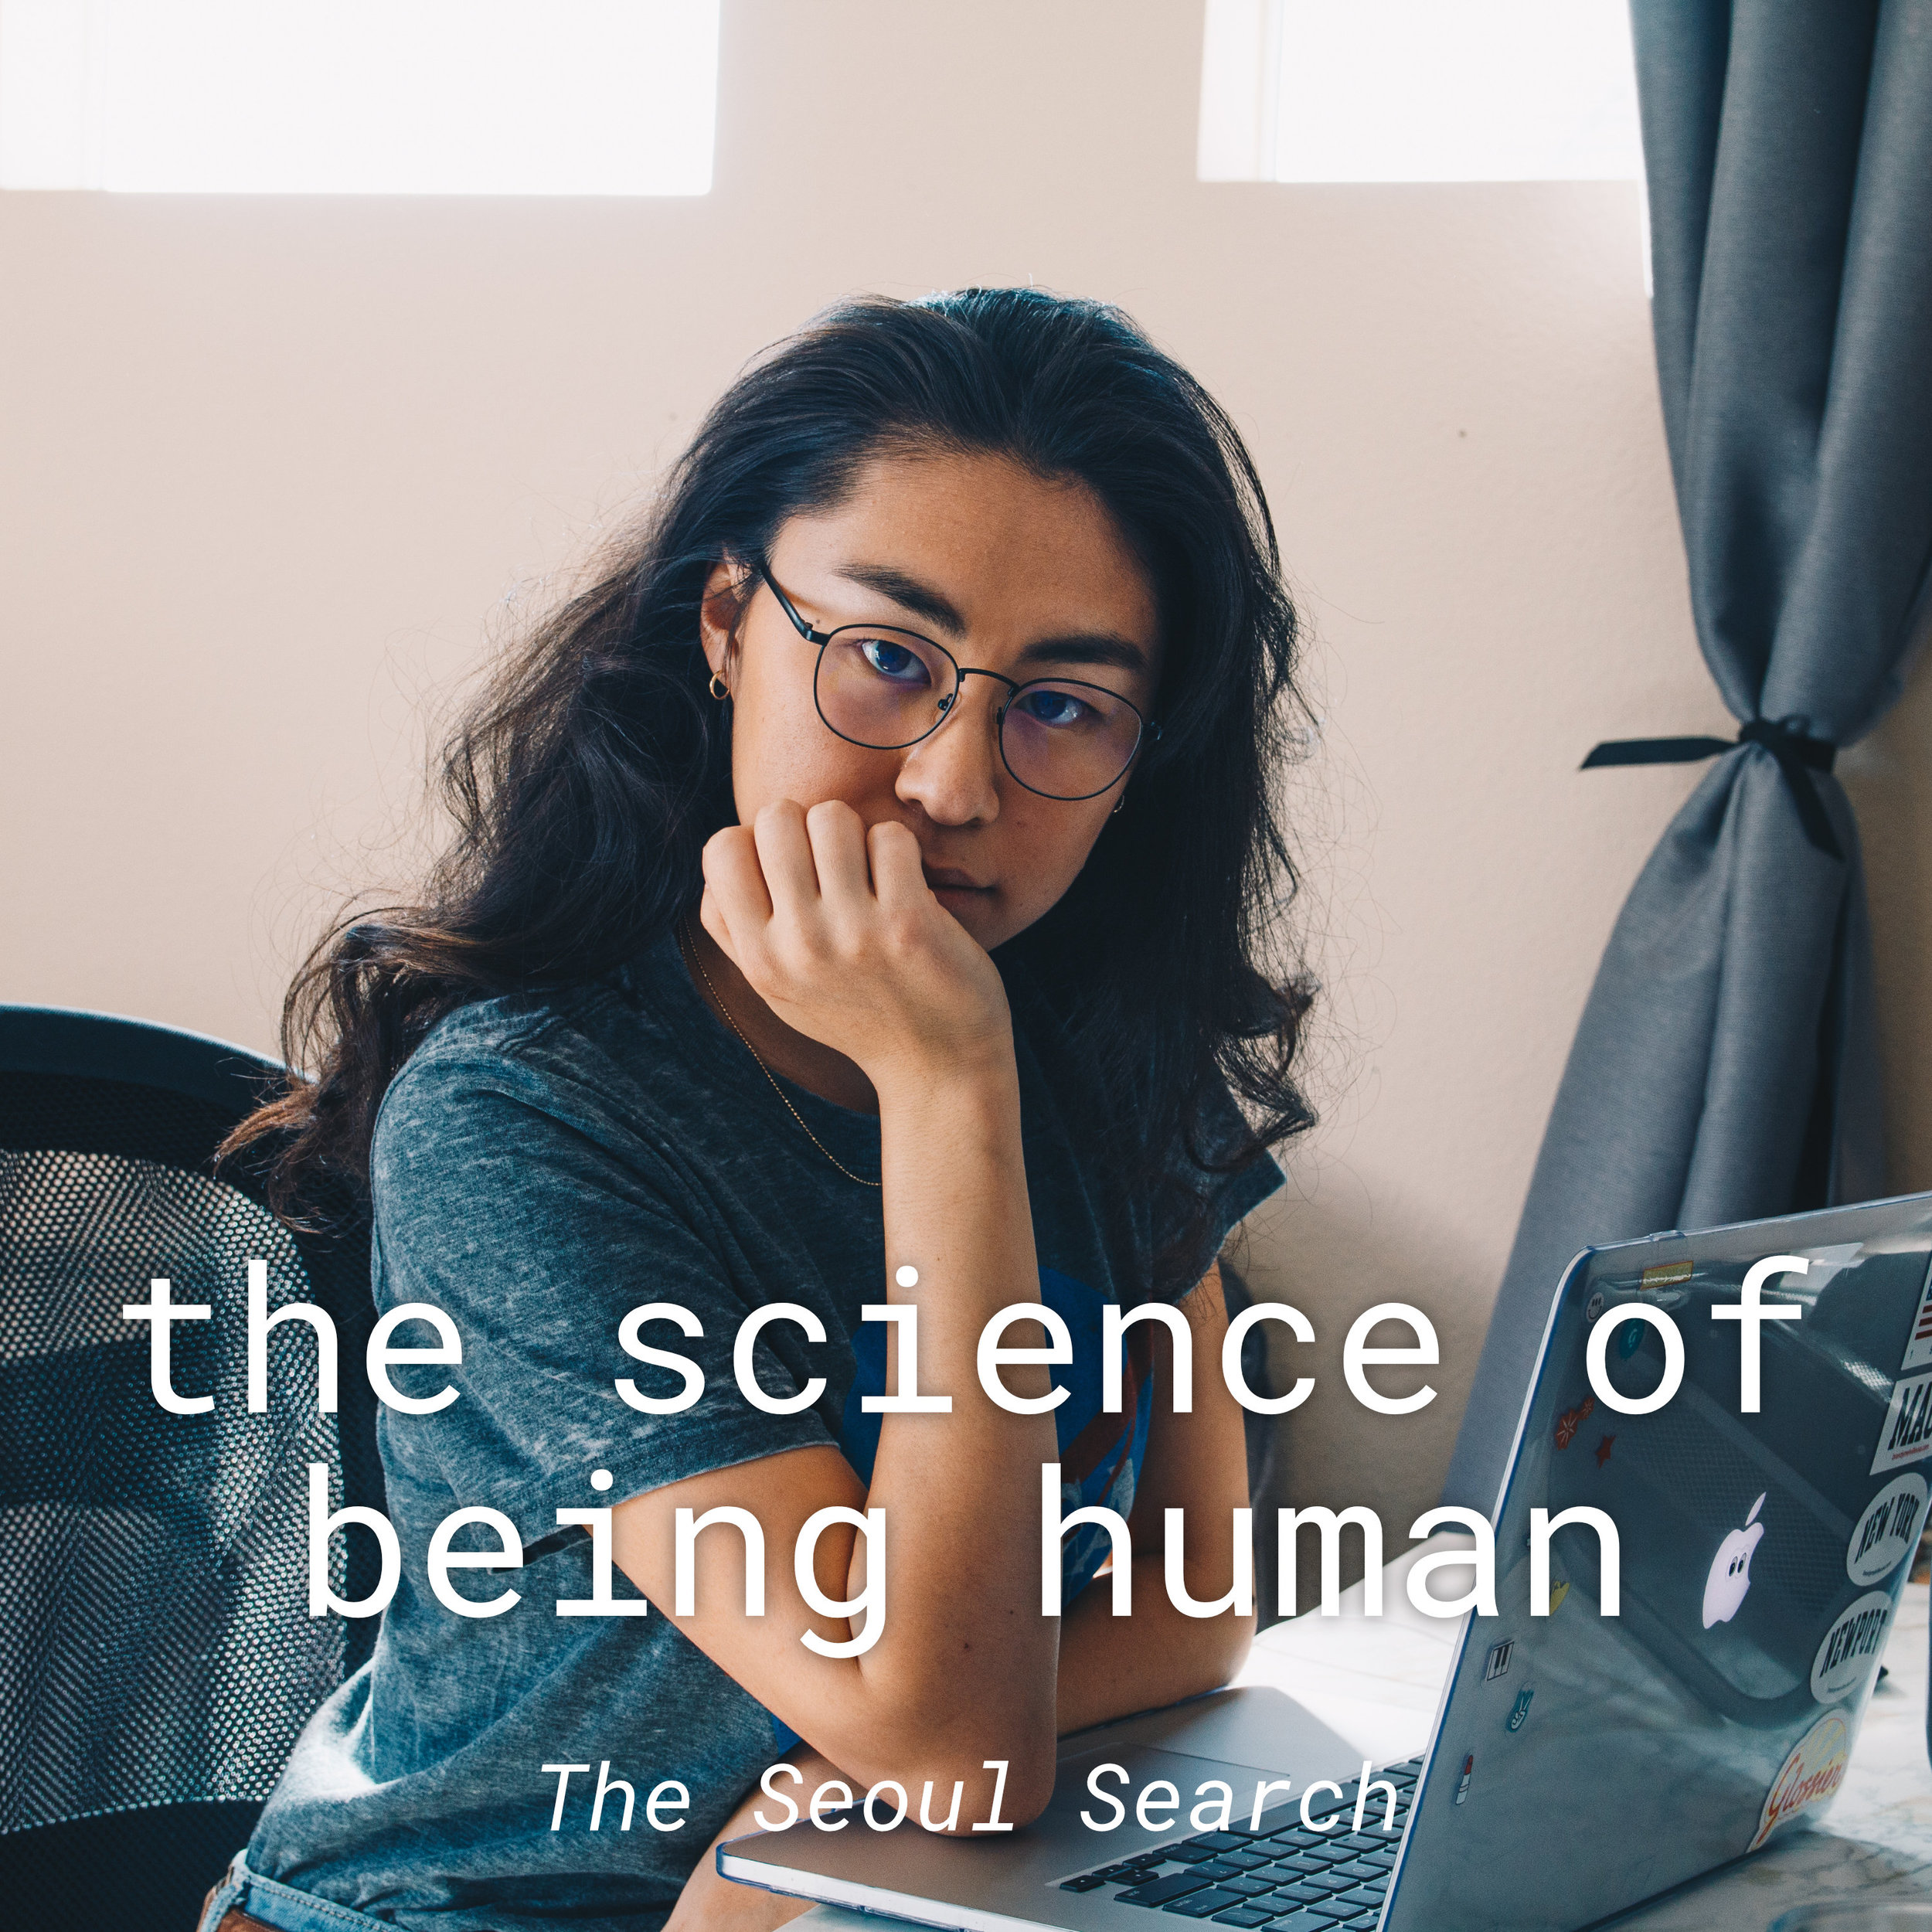 // the science of being human - My own podcast! I included my own podcast in this list because I truly do like it!